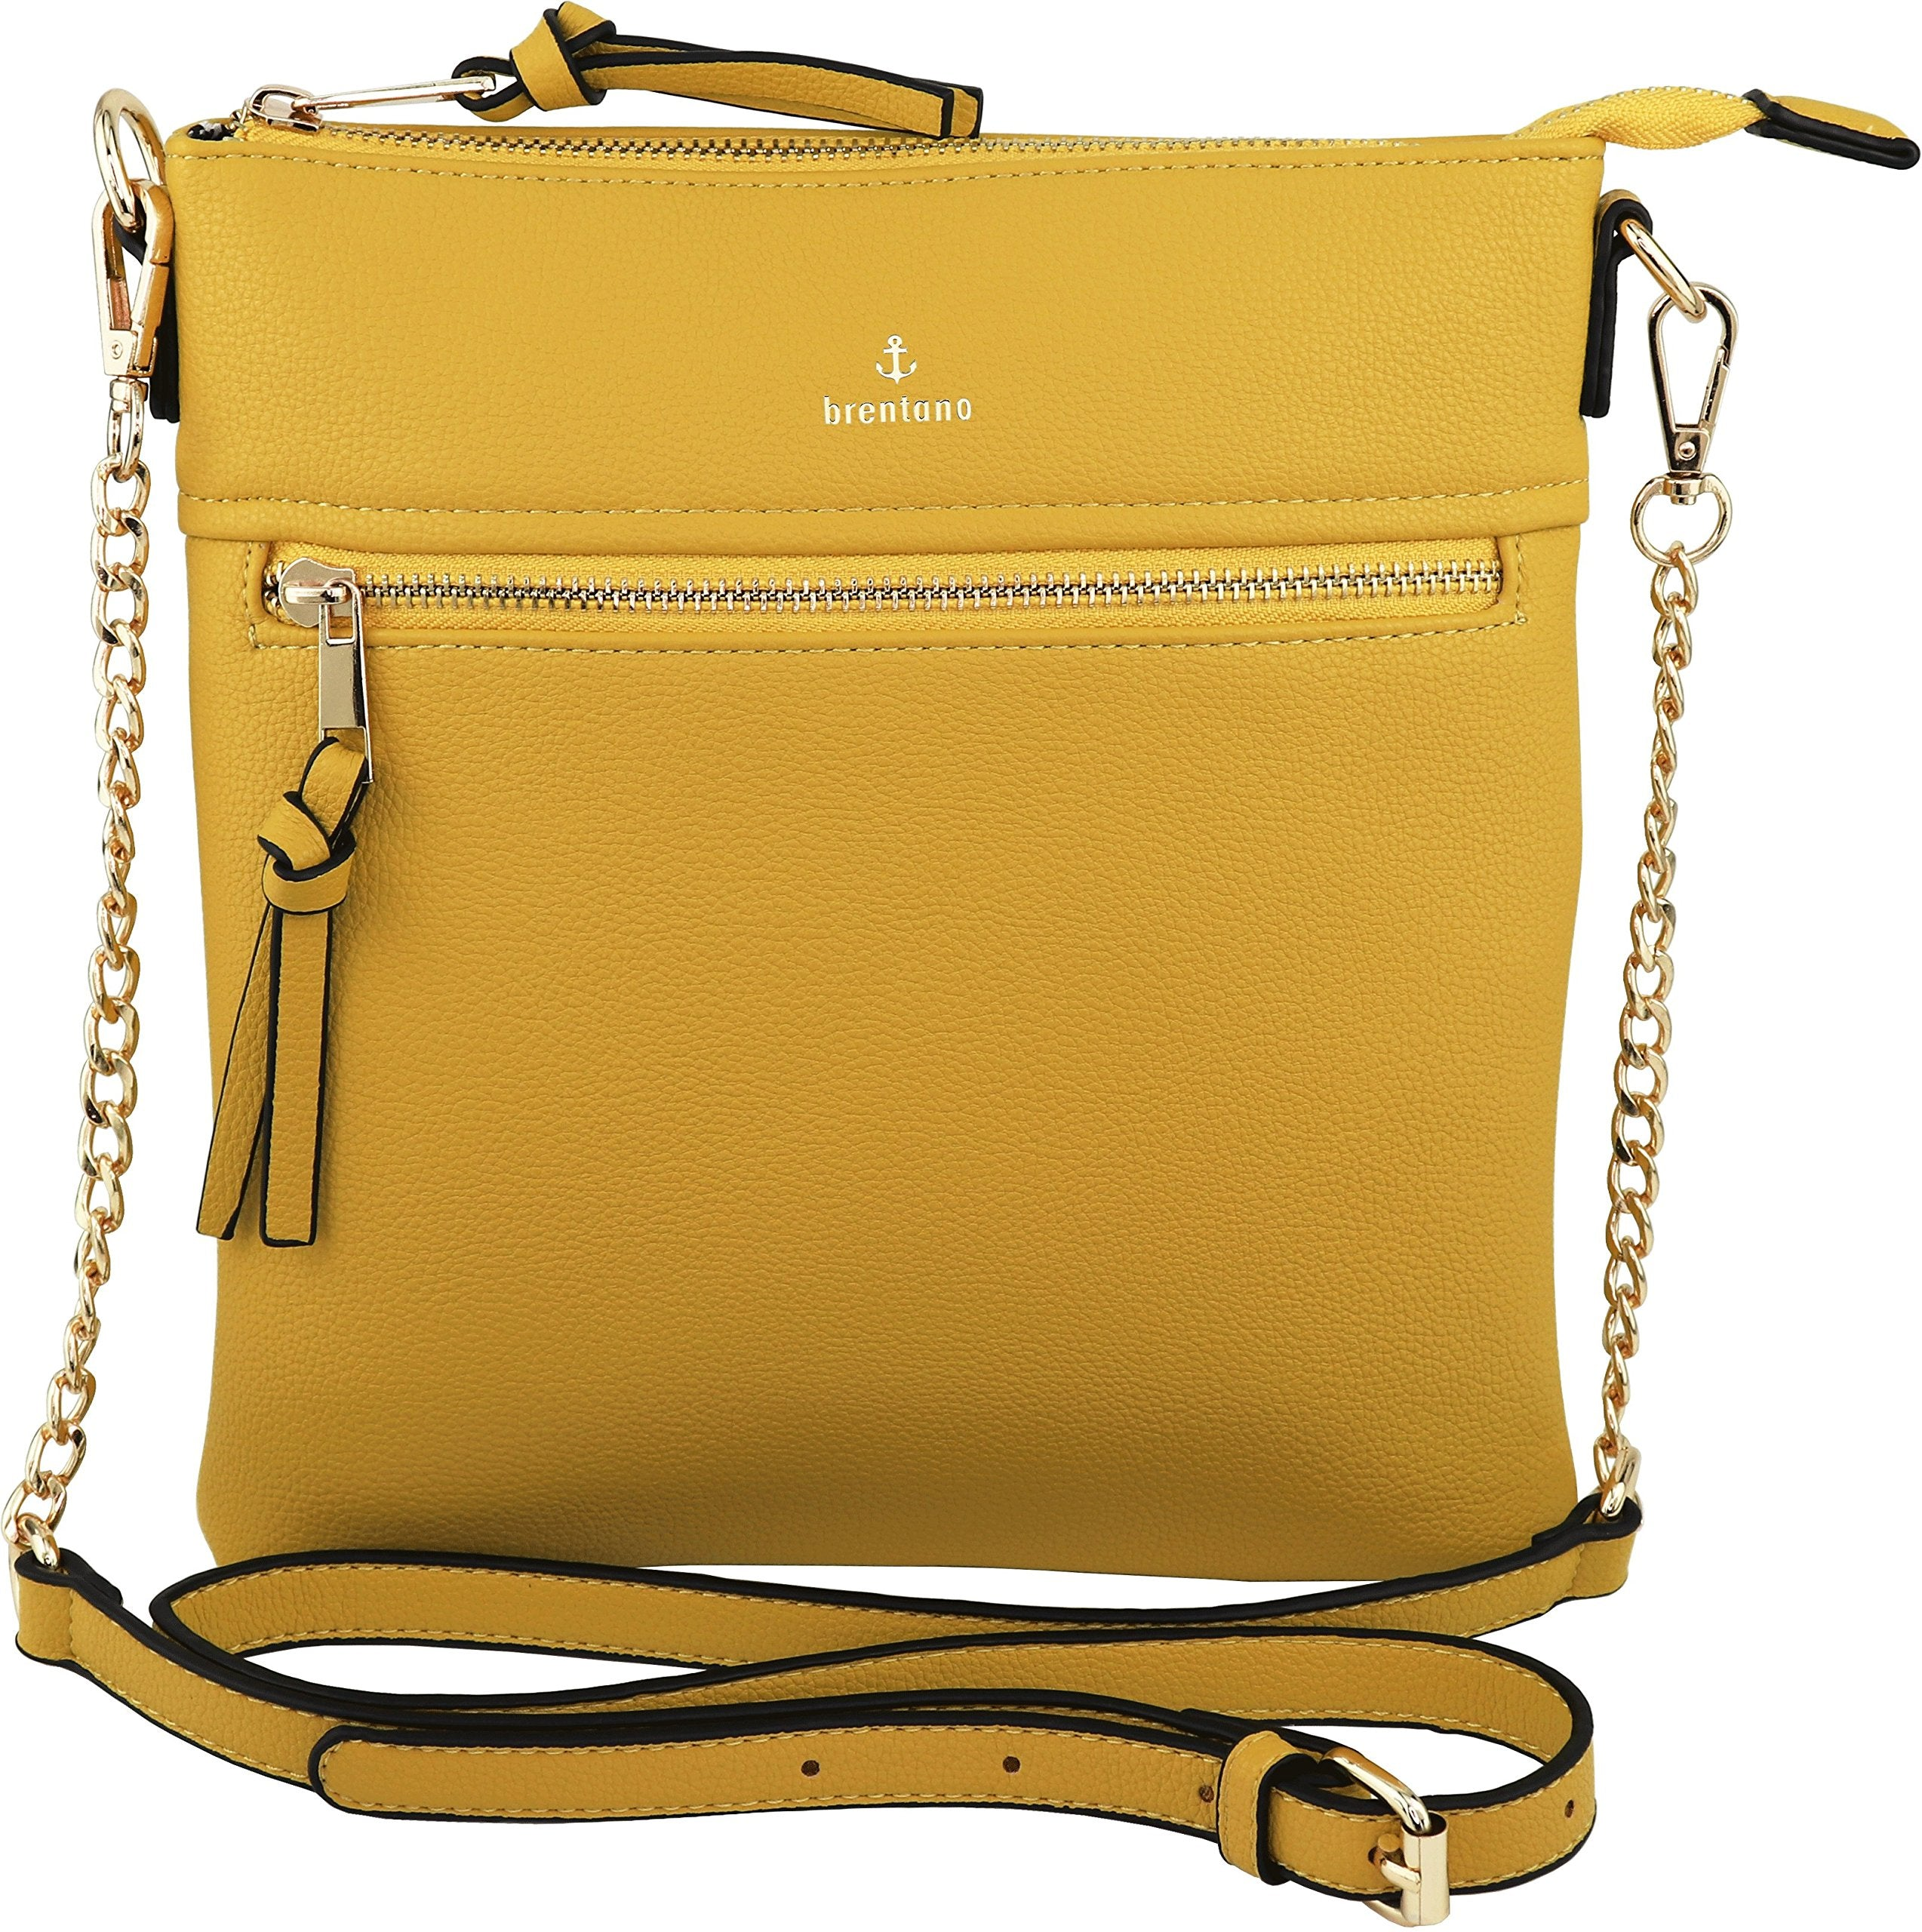 Vegan Double-Zipper Crossbody Bag with Chain Strap (Yellow) - wiihuu